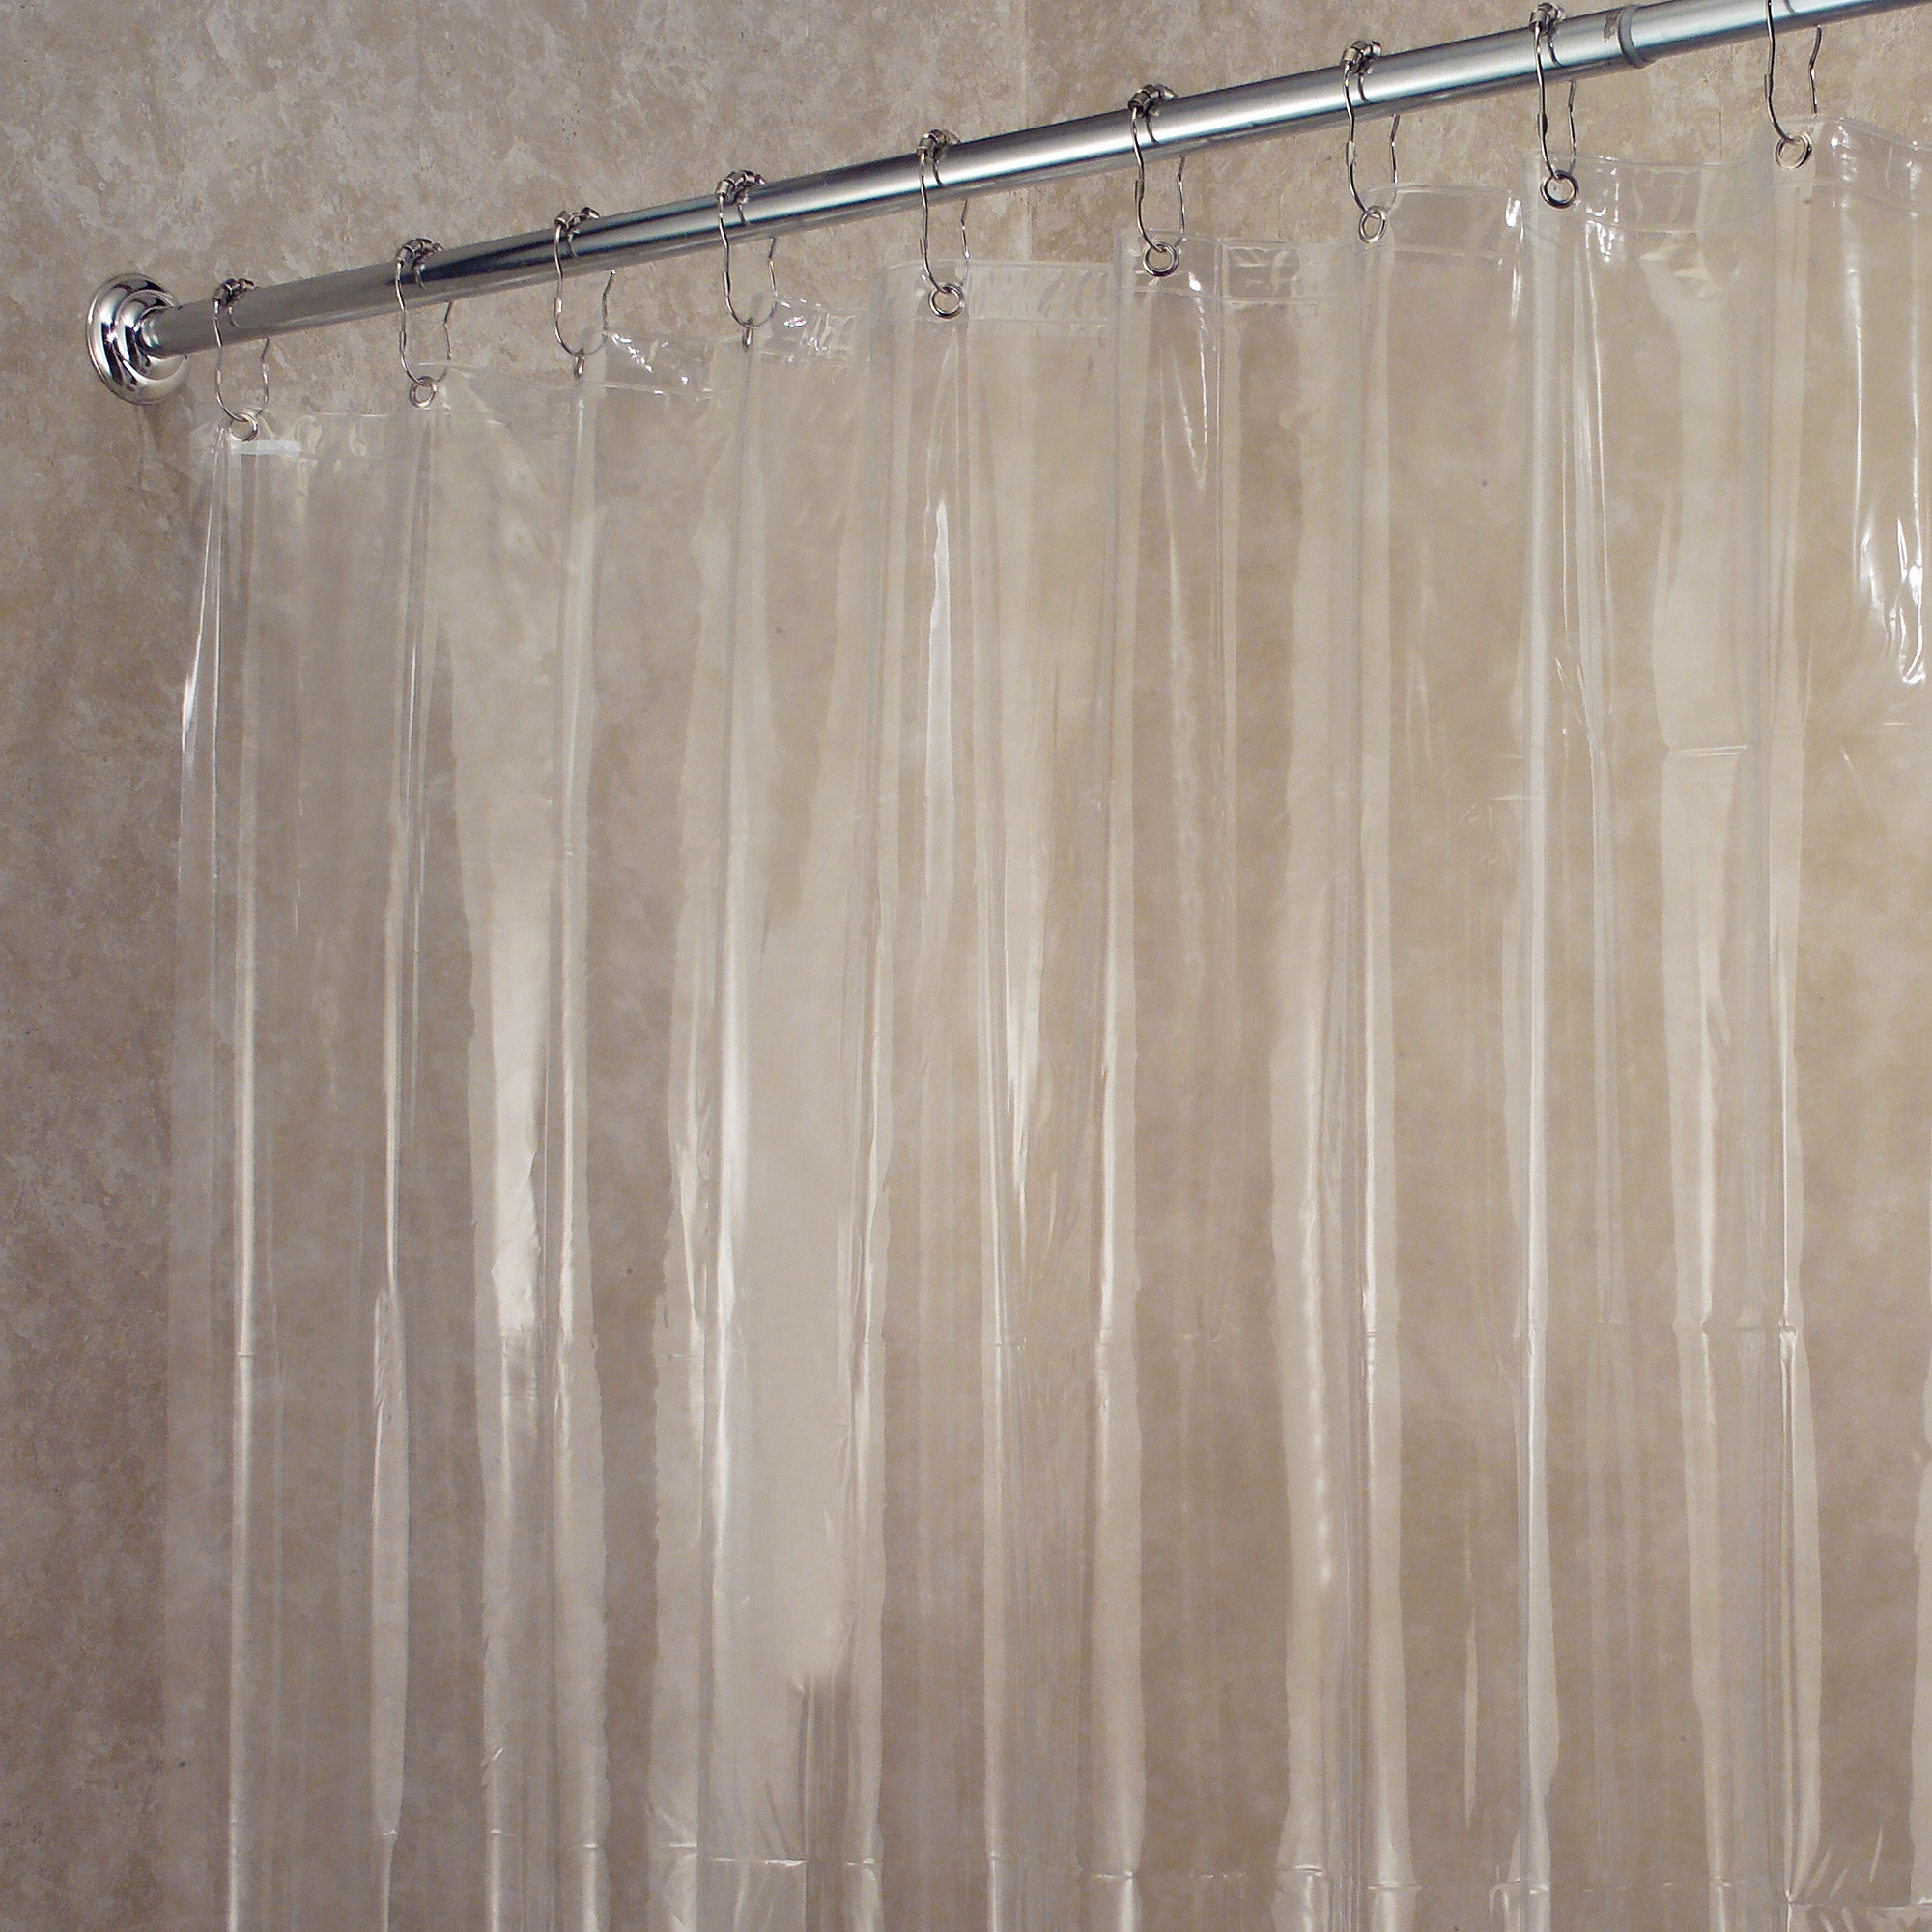 108 Long Clear Shower Curtain Liner • Shower Curtains Ideas